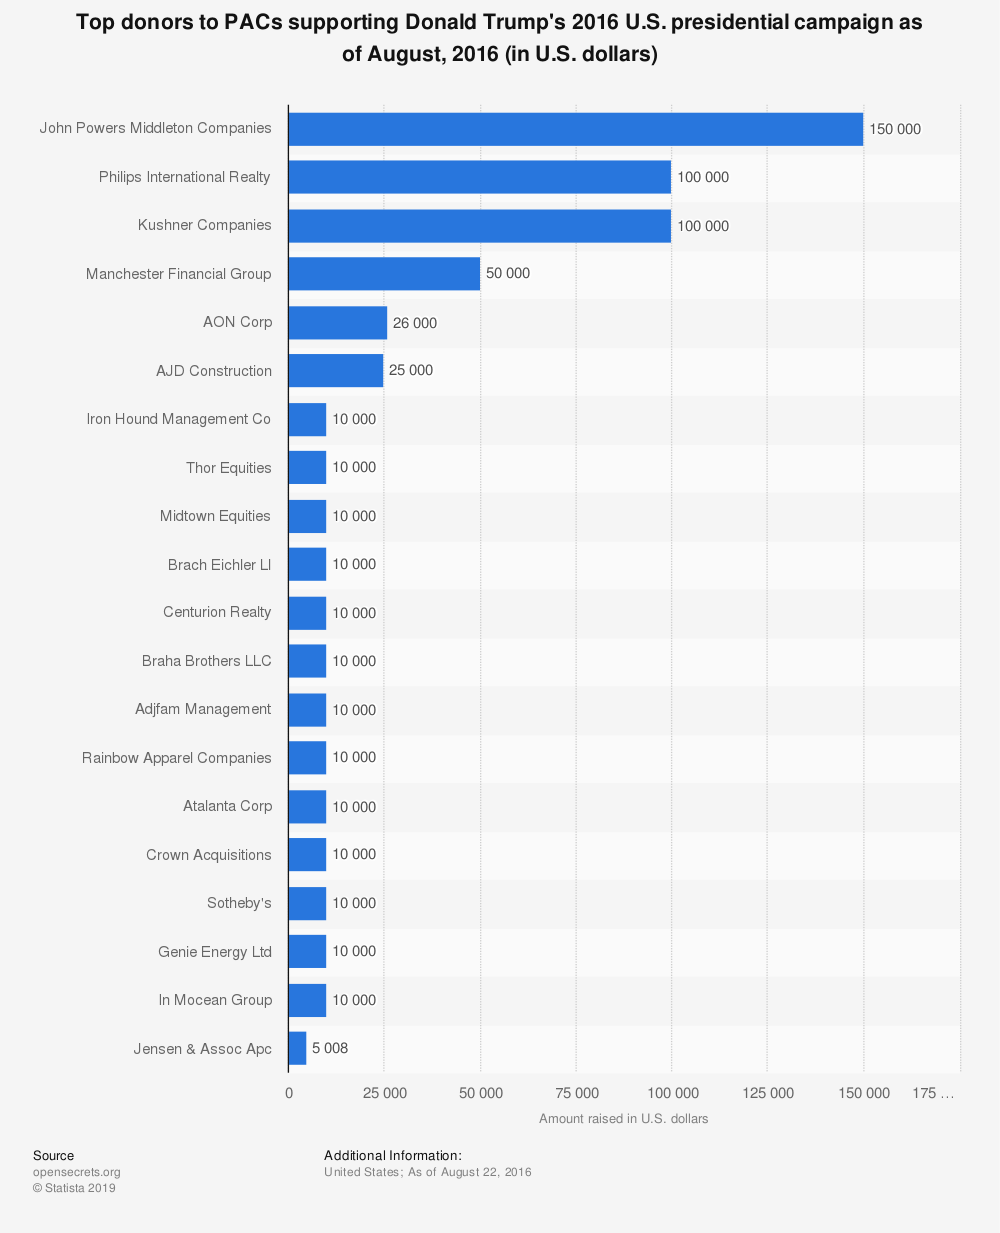 Statistic: Top donors to PACs supporting Donald Trump's 2016 U.S. presidential campaign as of August, 2016 (in U.S. dollars) | Statista